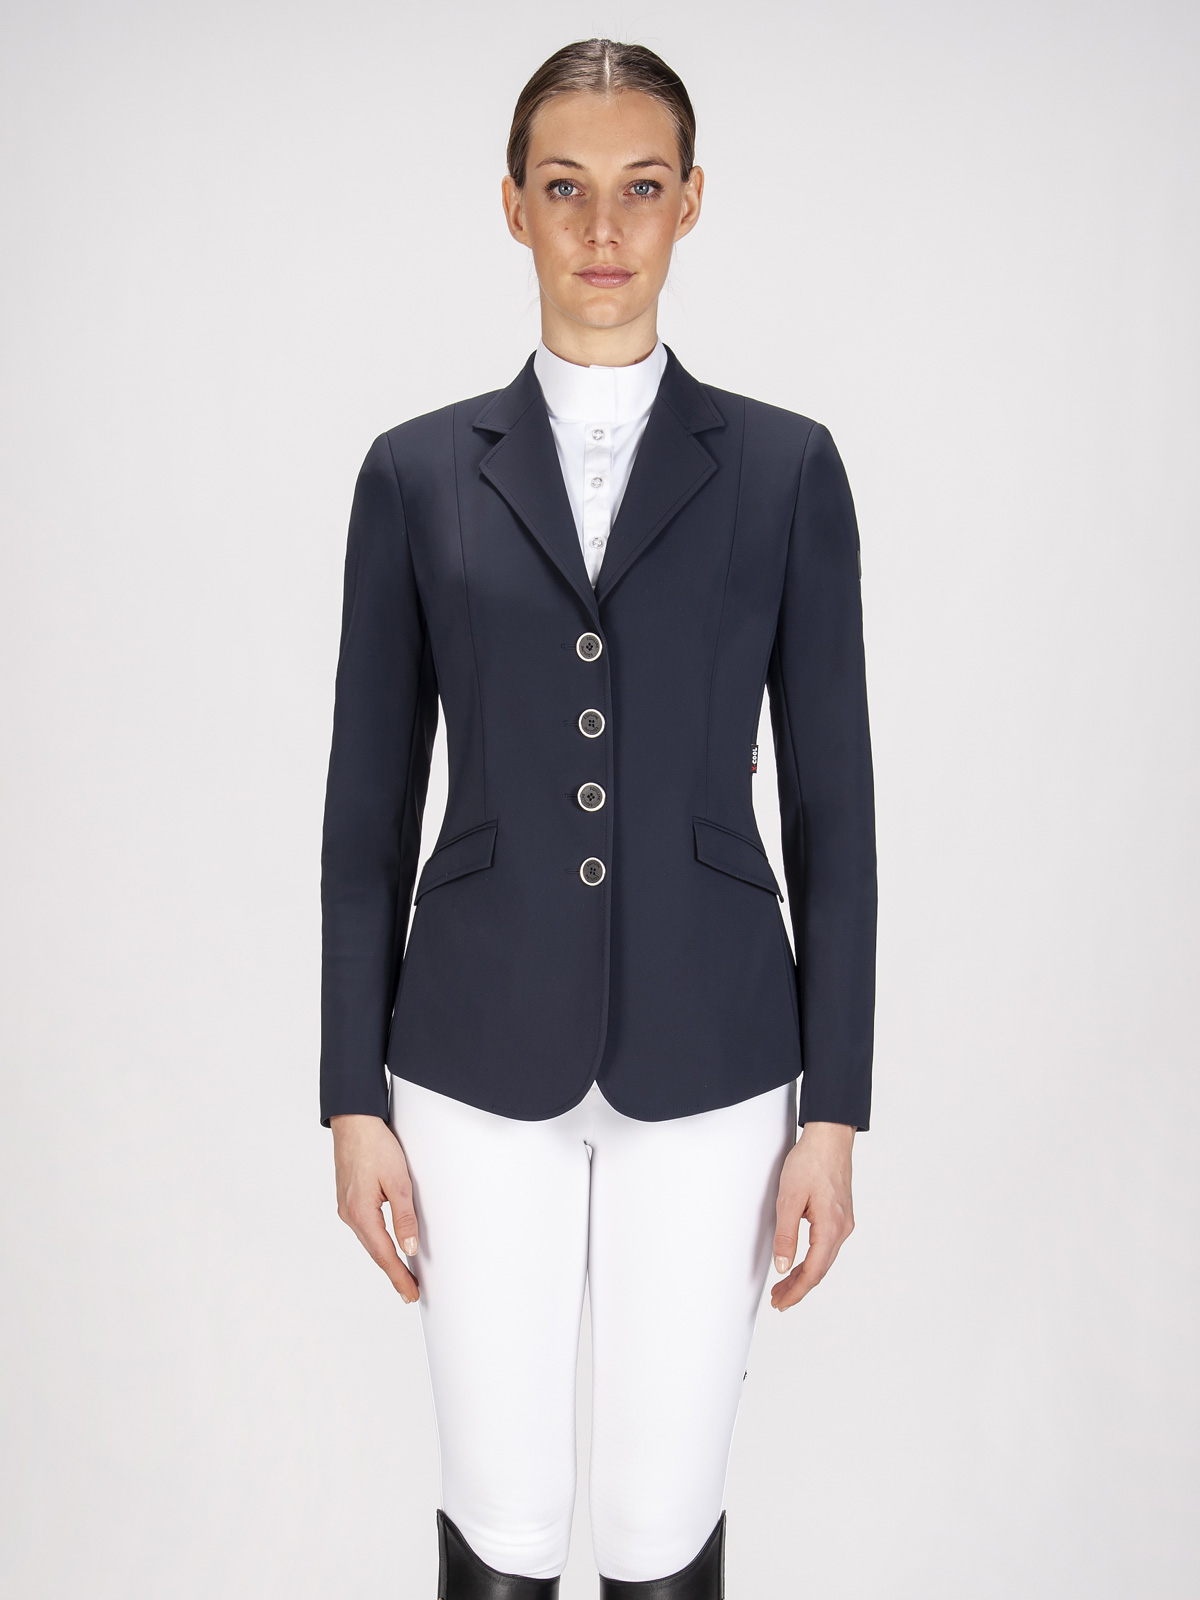 Gait women's show coat in X-Cool Evo performance fabric navy blue